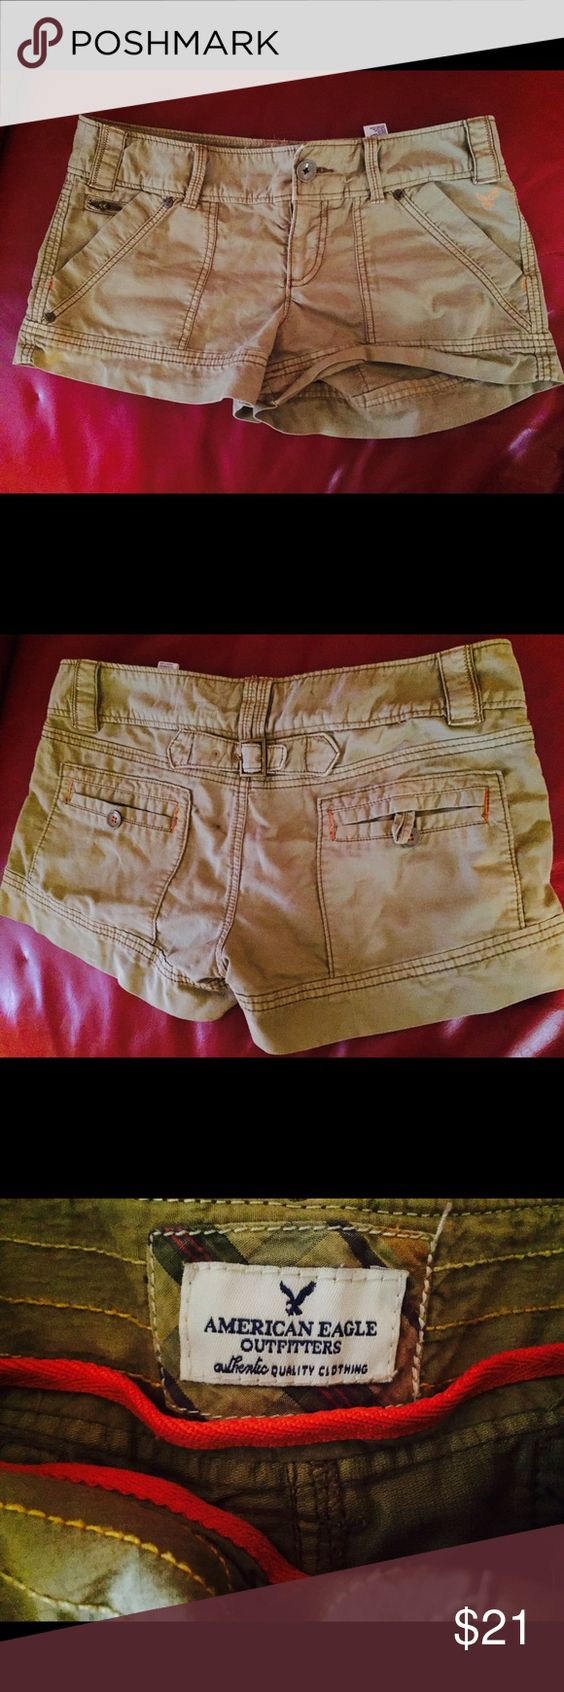 American Eagle Cargo Shorts AE cargo shorts in size 8 (US) , new condition, worn once yet didn't fit! Buy today 💛😊 American Eagle Outfitters Shorts Cargos